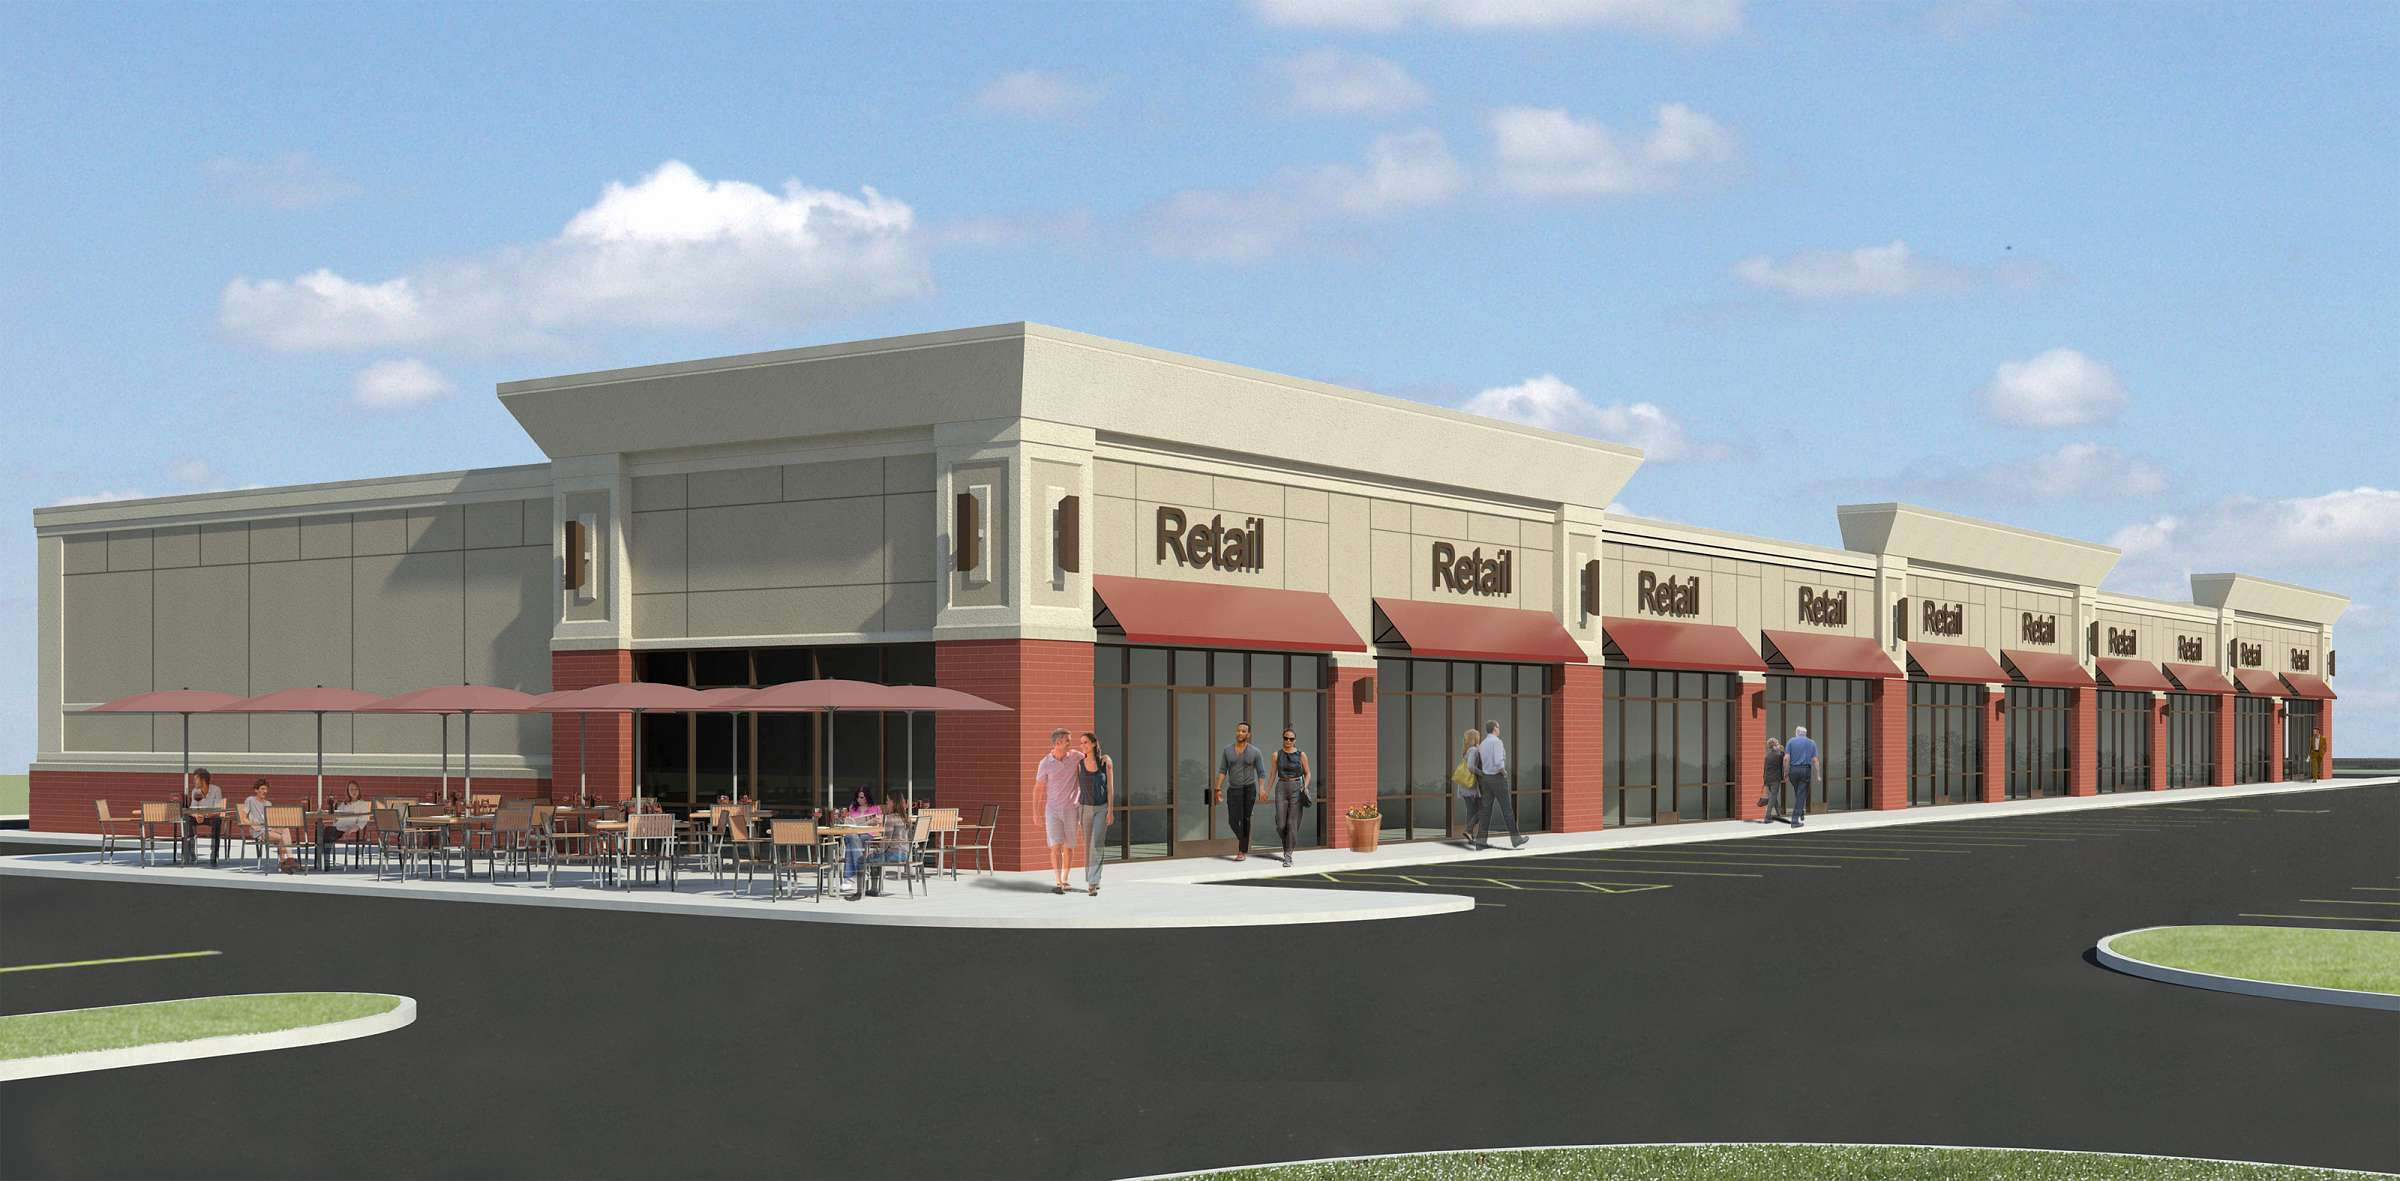 Strip Mall Rendering